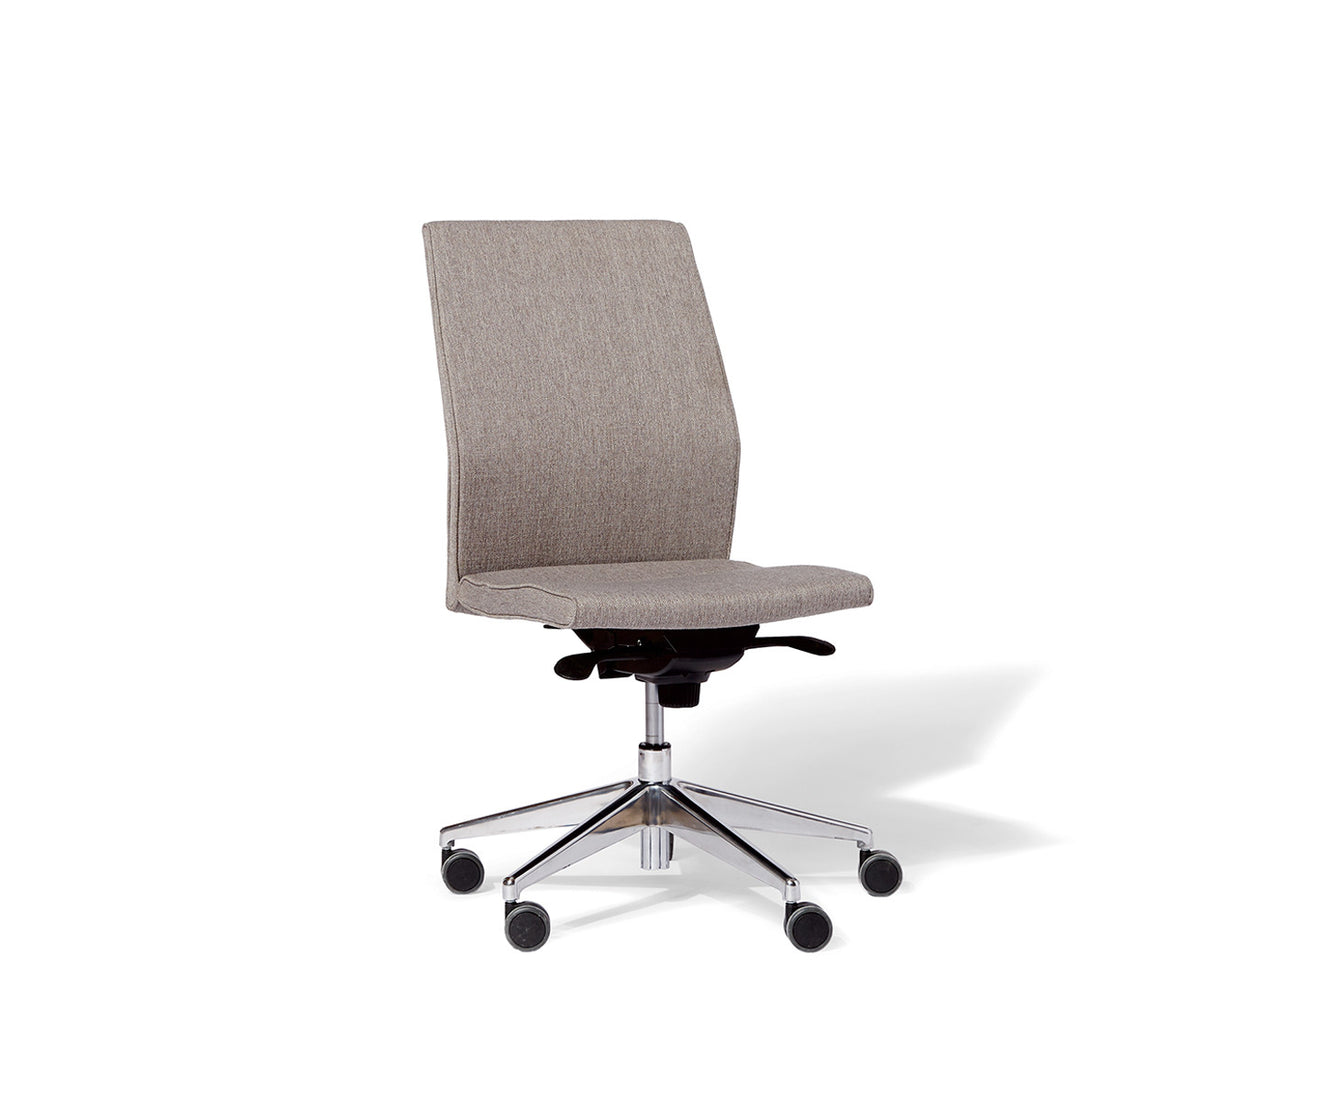 Contoured MidBack Armless Upholstered Task Chair west elm WORKSPACE